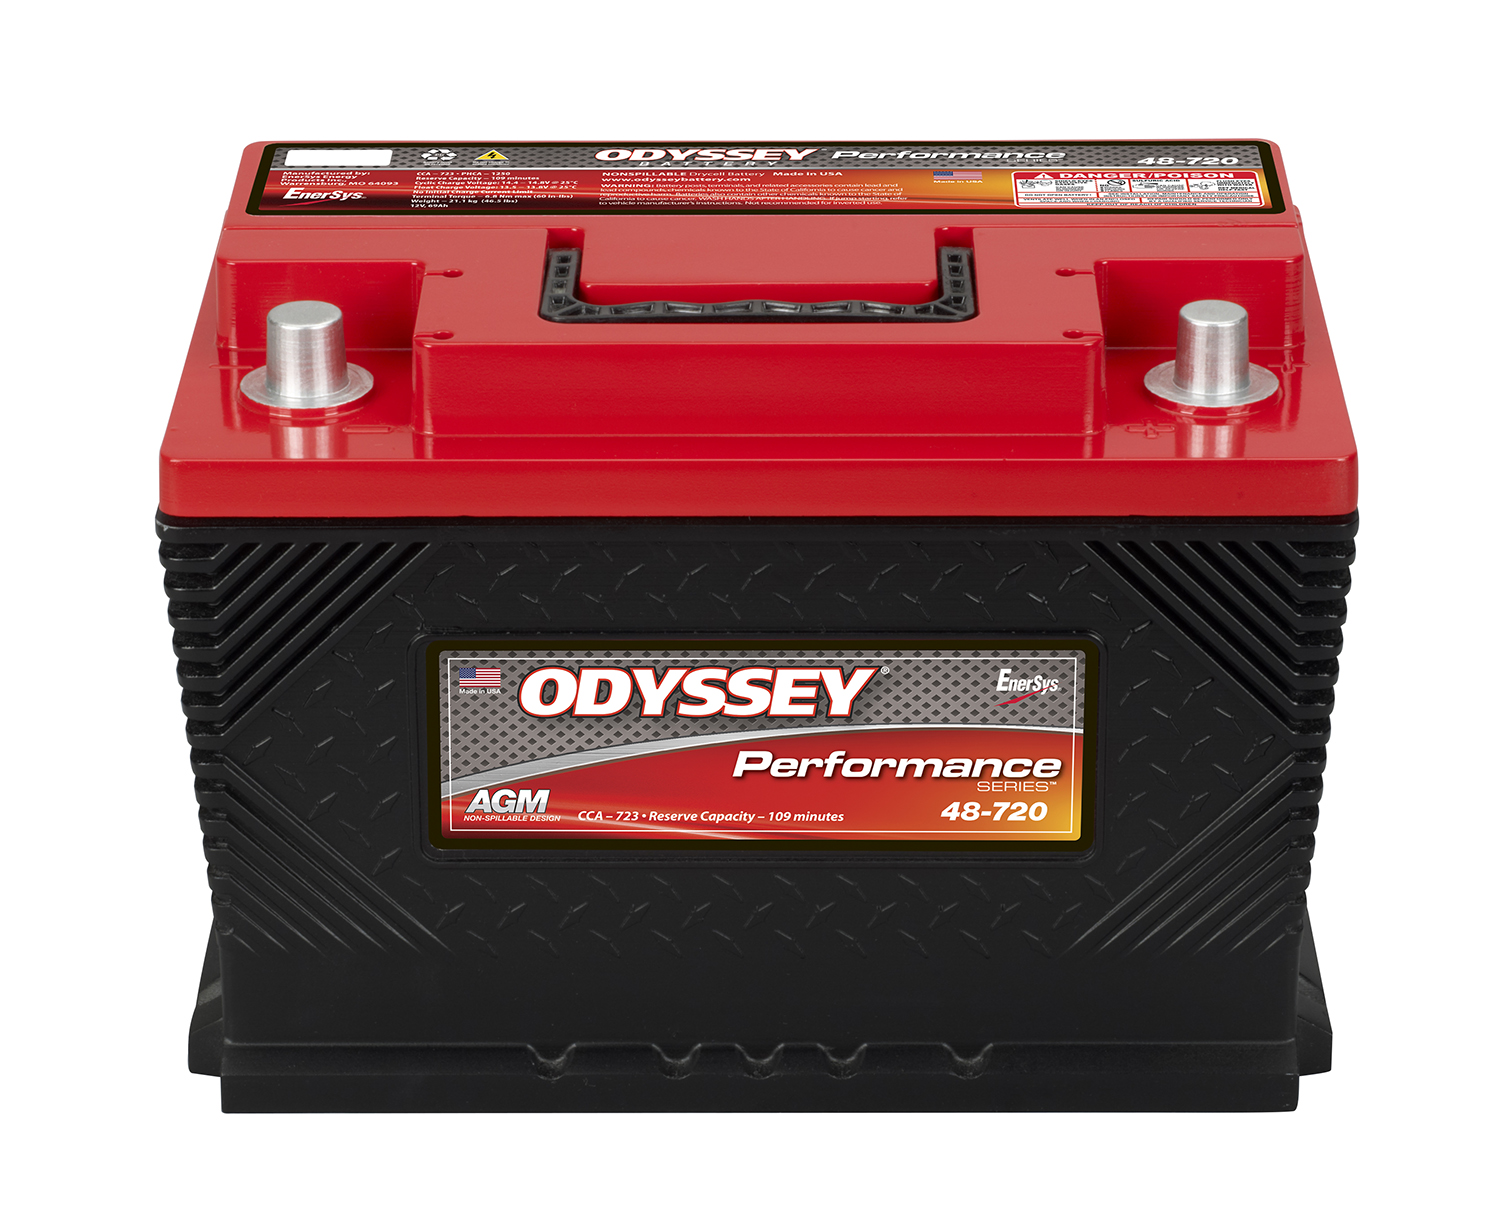 EnerSys expands ODYSSEY battery line